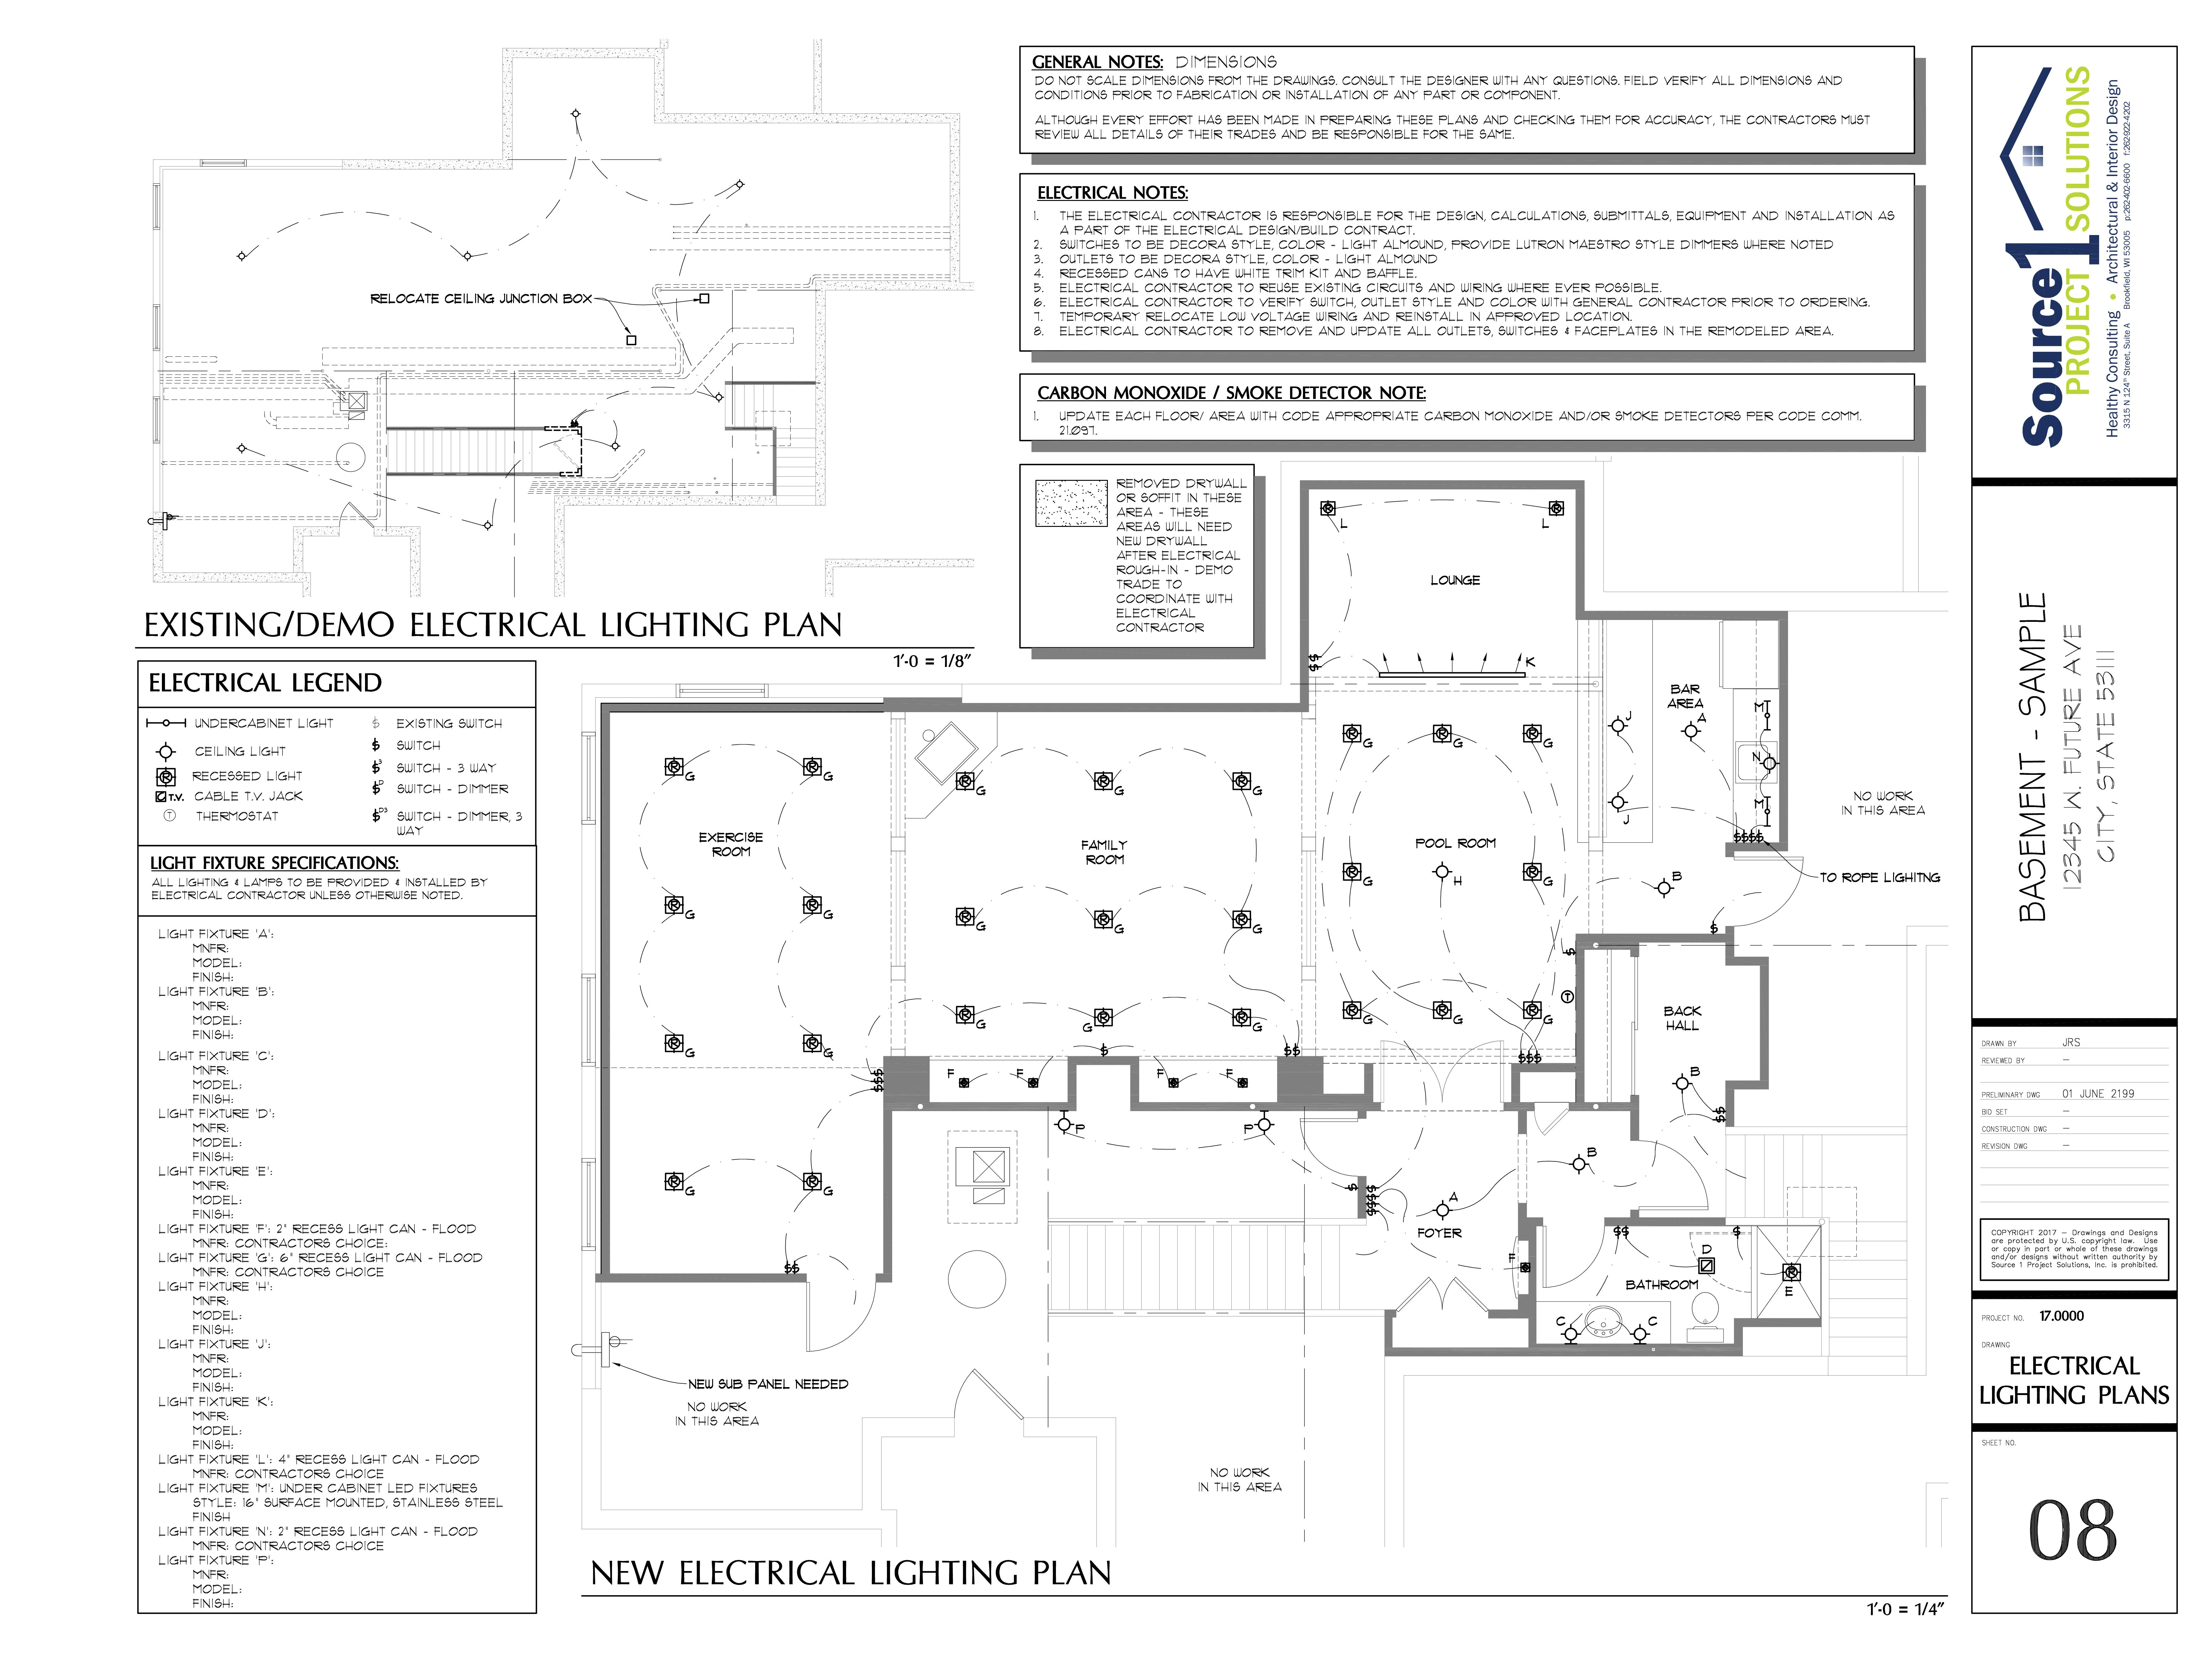 Source 1 Basement Plan - SAMPLE 01_8